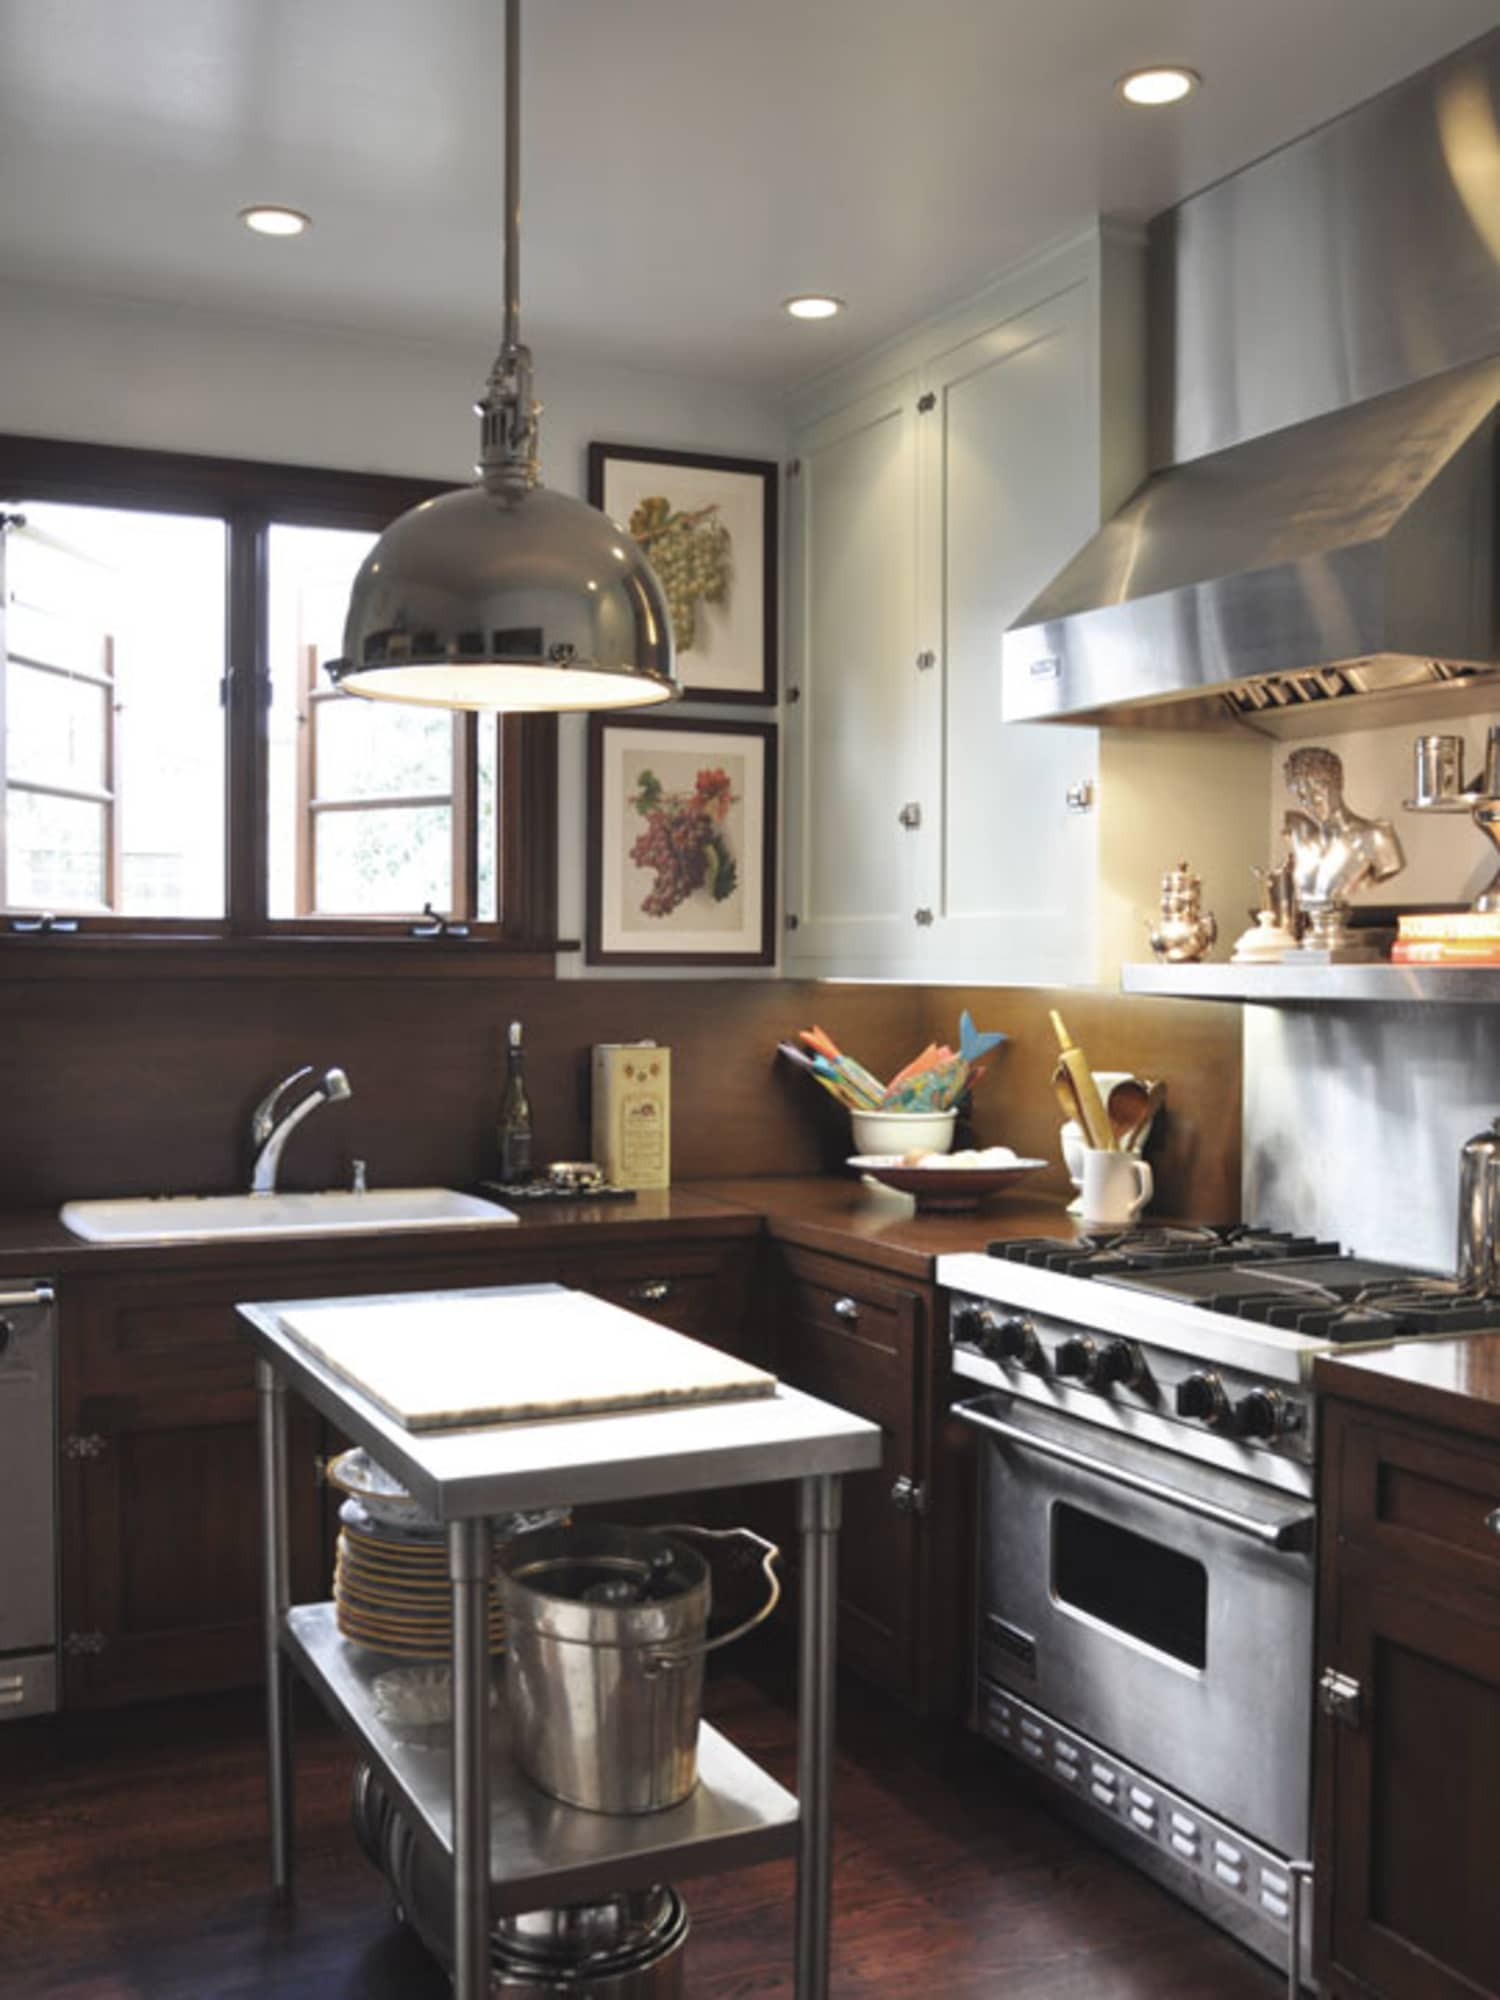 15 tips and ideas to help you get the neatest most